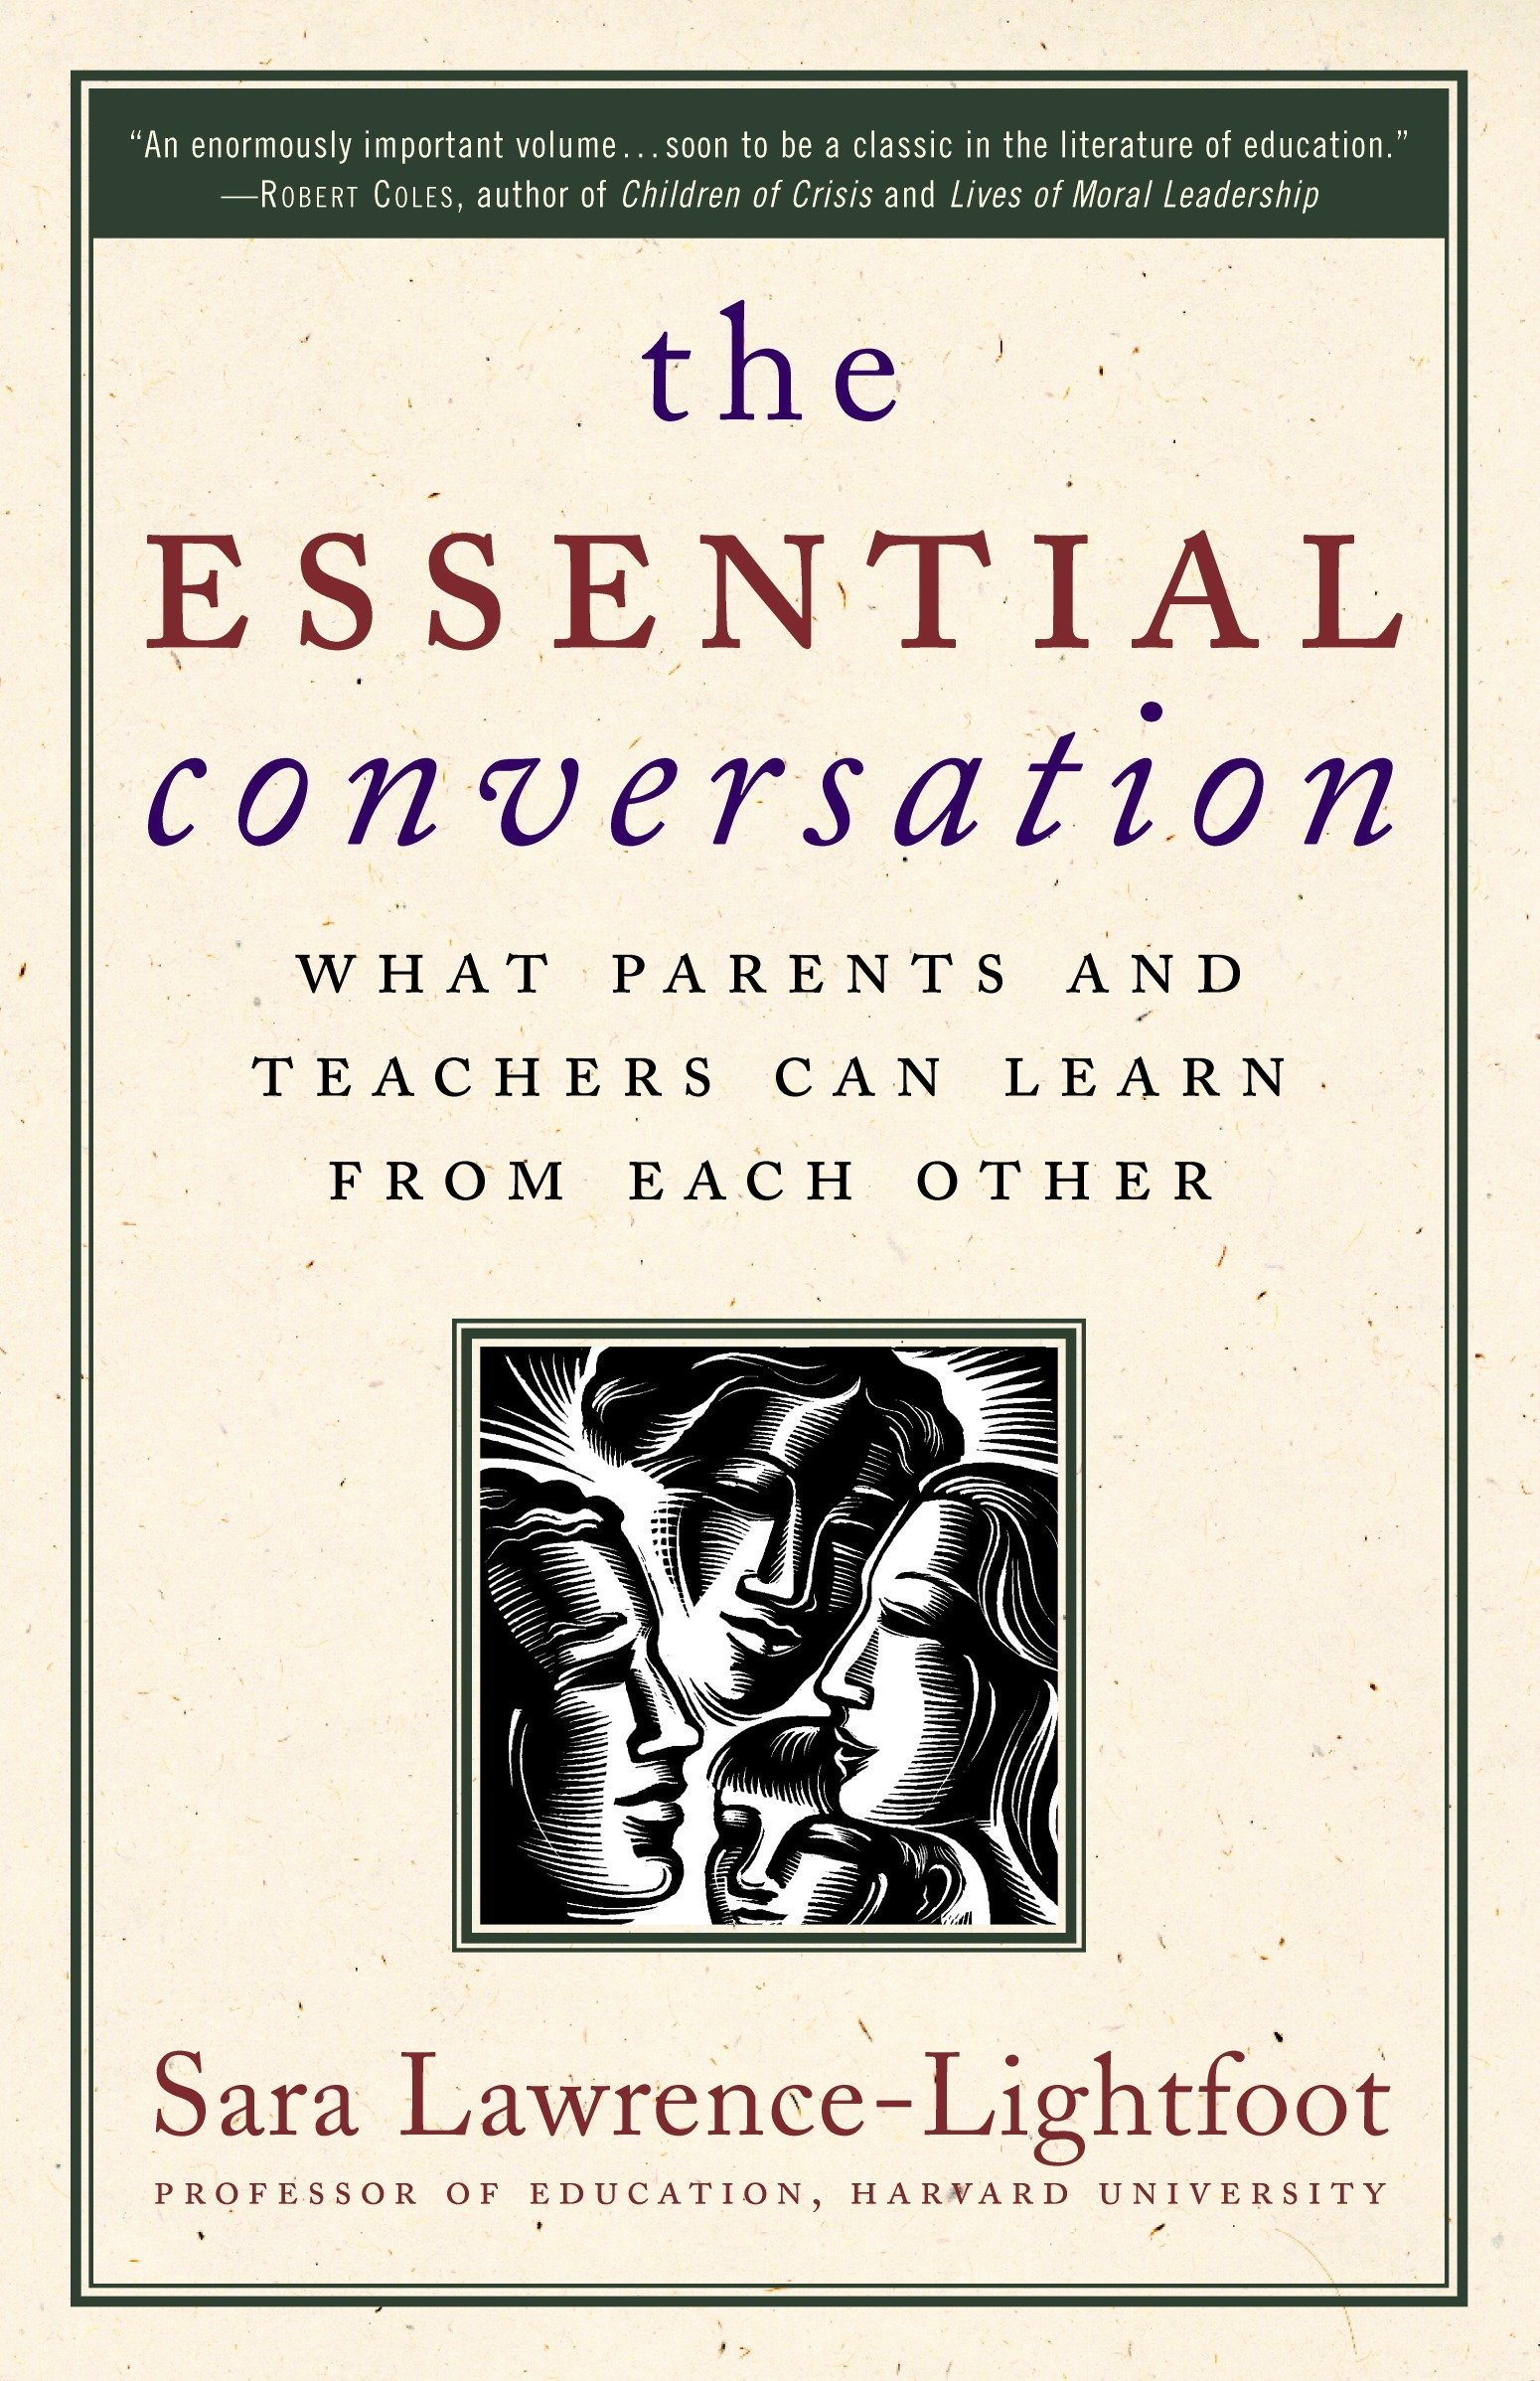 The Essential Conversation: What Parents and Teachers Can Learn from Each  Other: Sara Lawrence-Lightfoot: 9780345475800: Amazon.com: Books